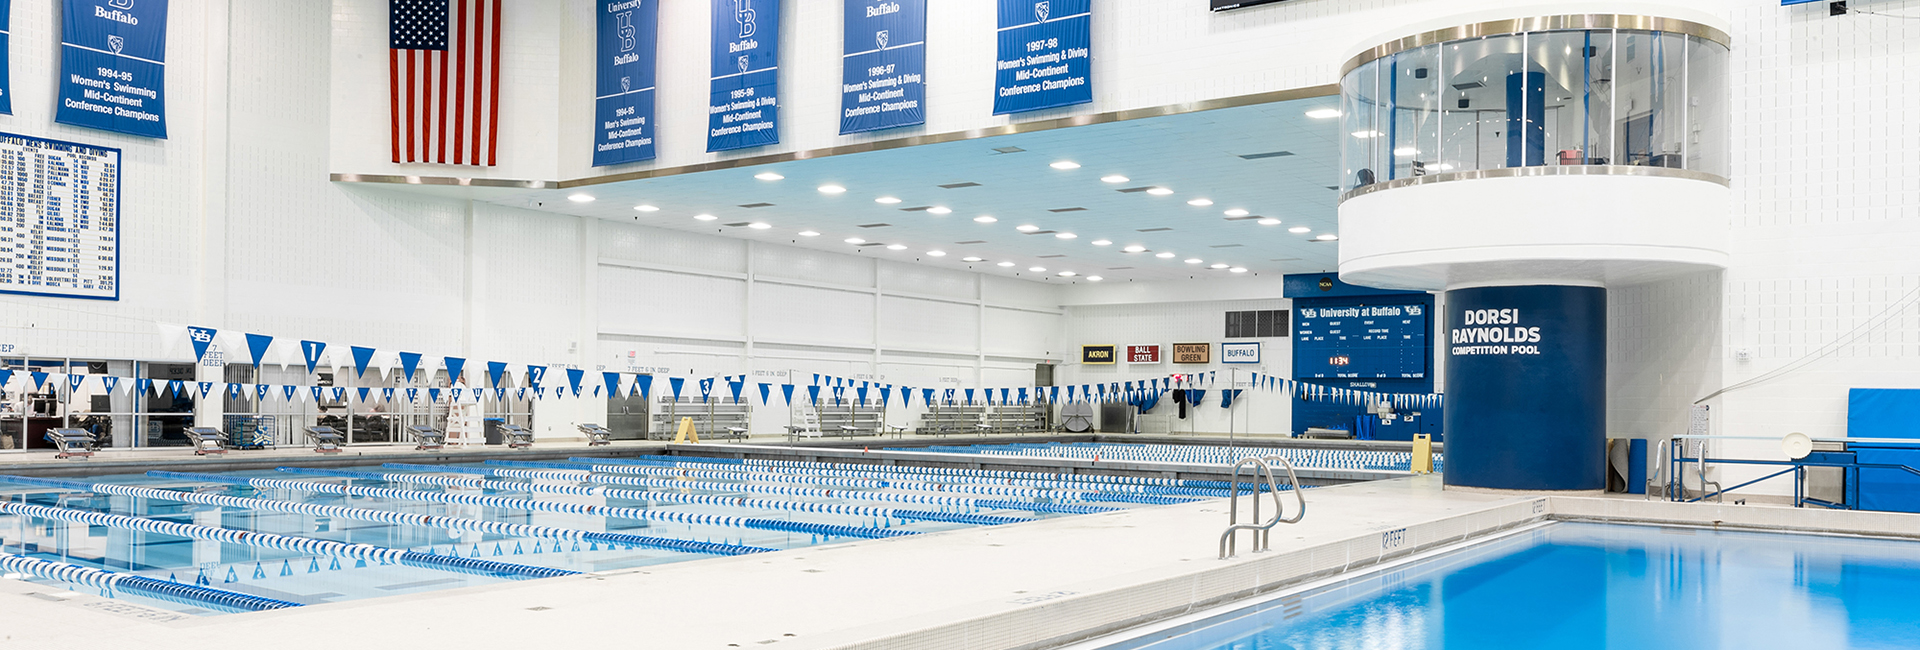 Dorsi Raynolds Competition Pool